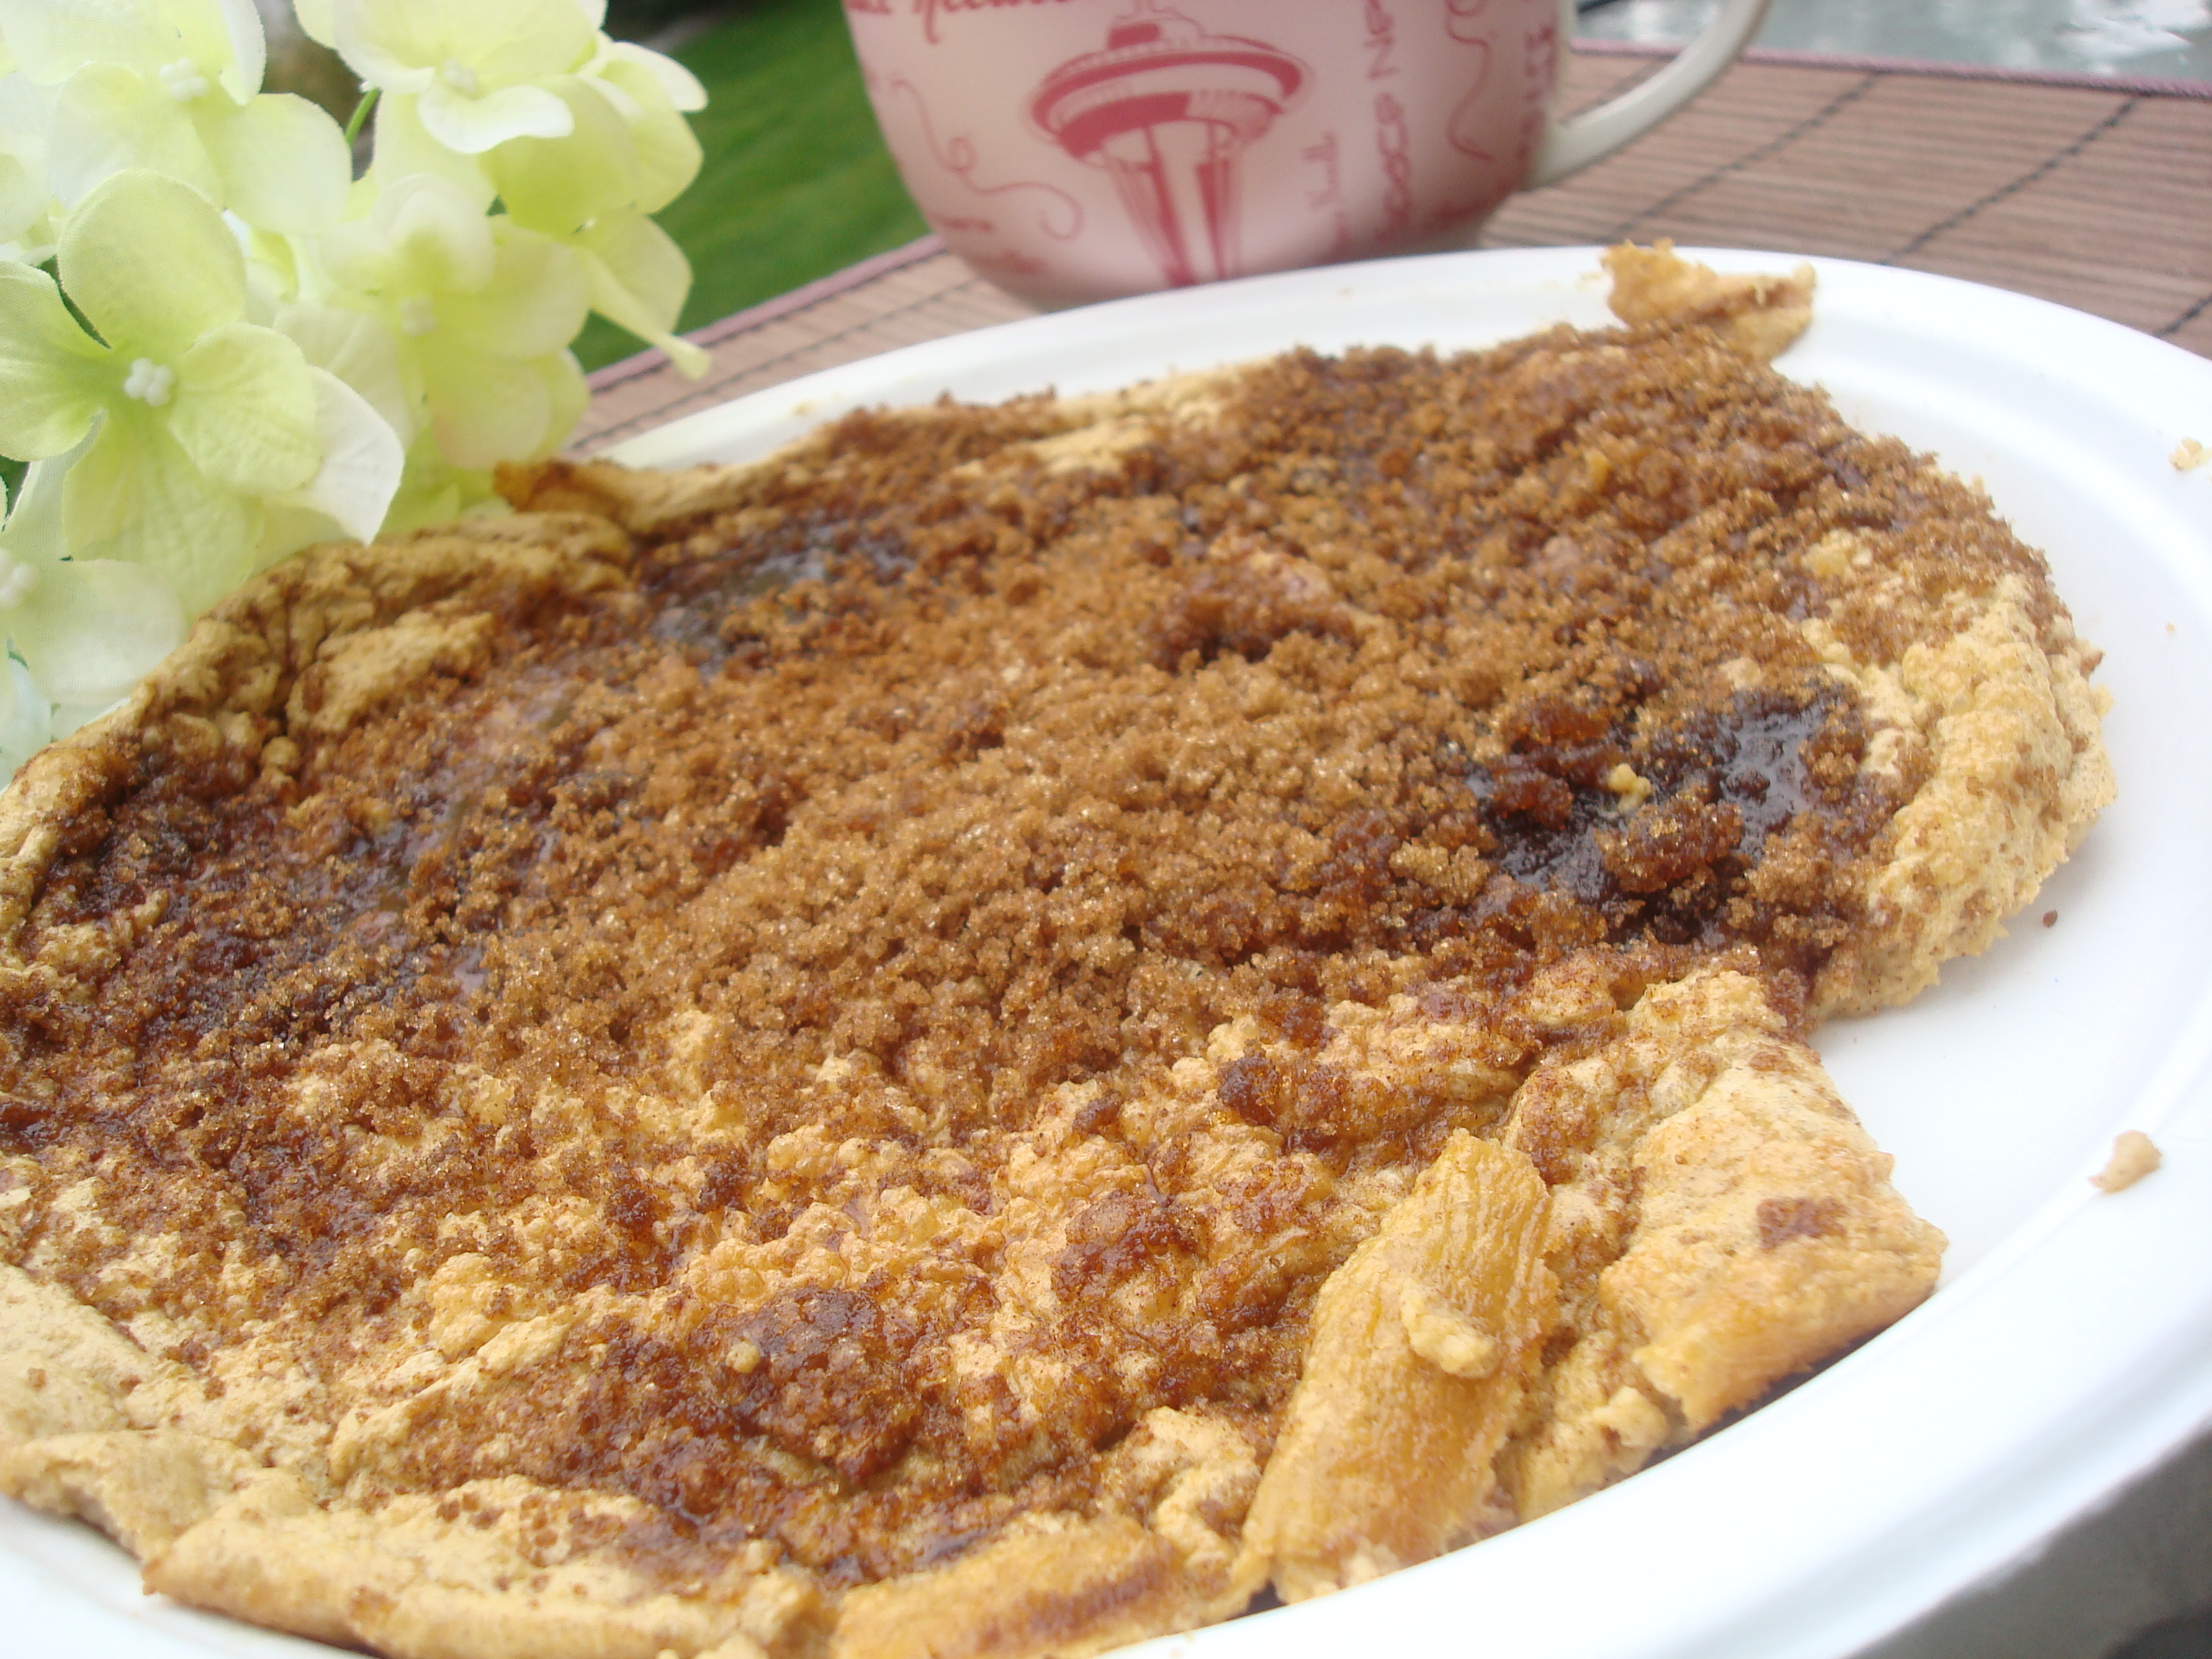 Cinnamon Brown Sugar Crusted German Pancake | Grain Mill Wagon